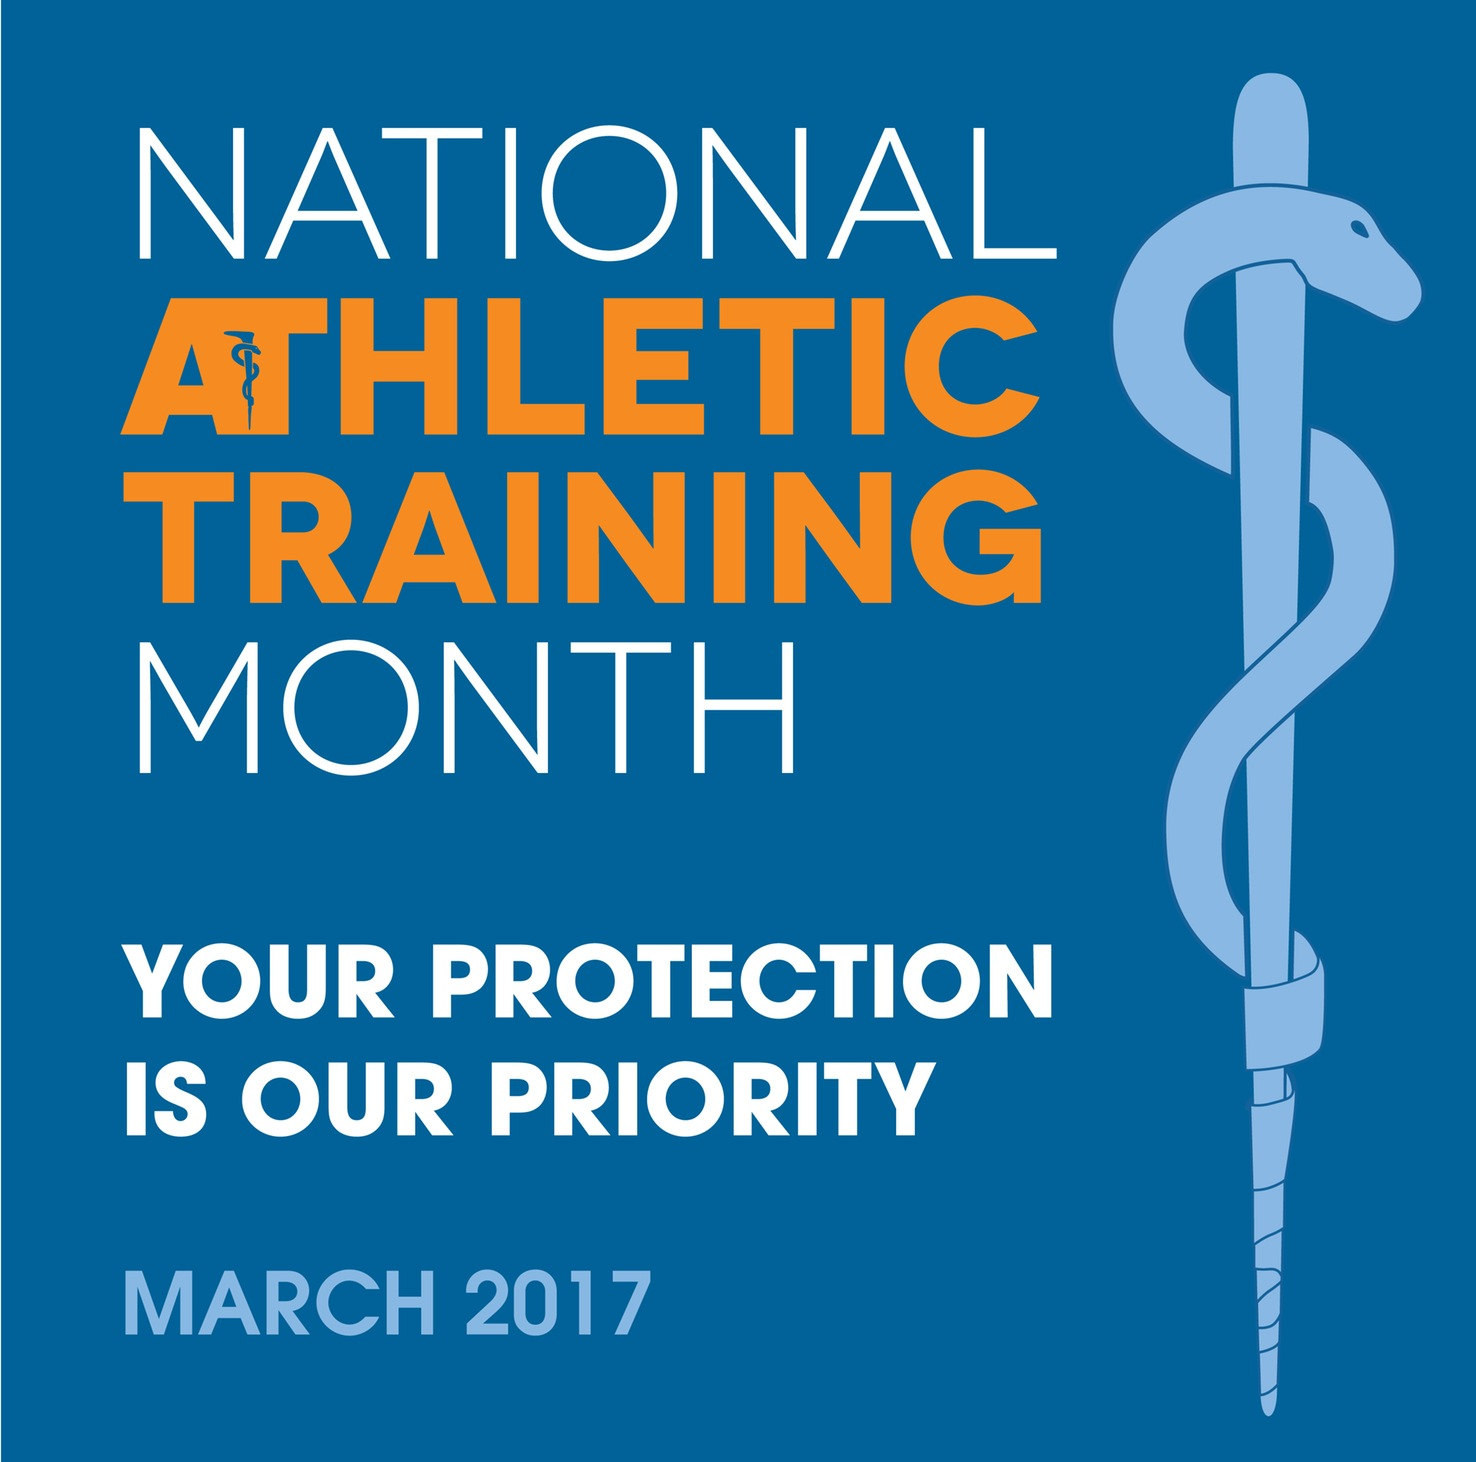 Pirates trio honored during National Athletic Training Month